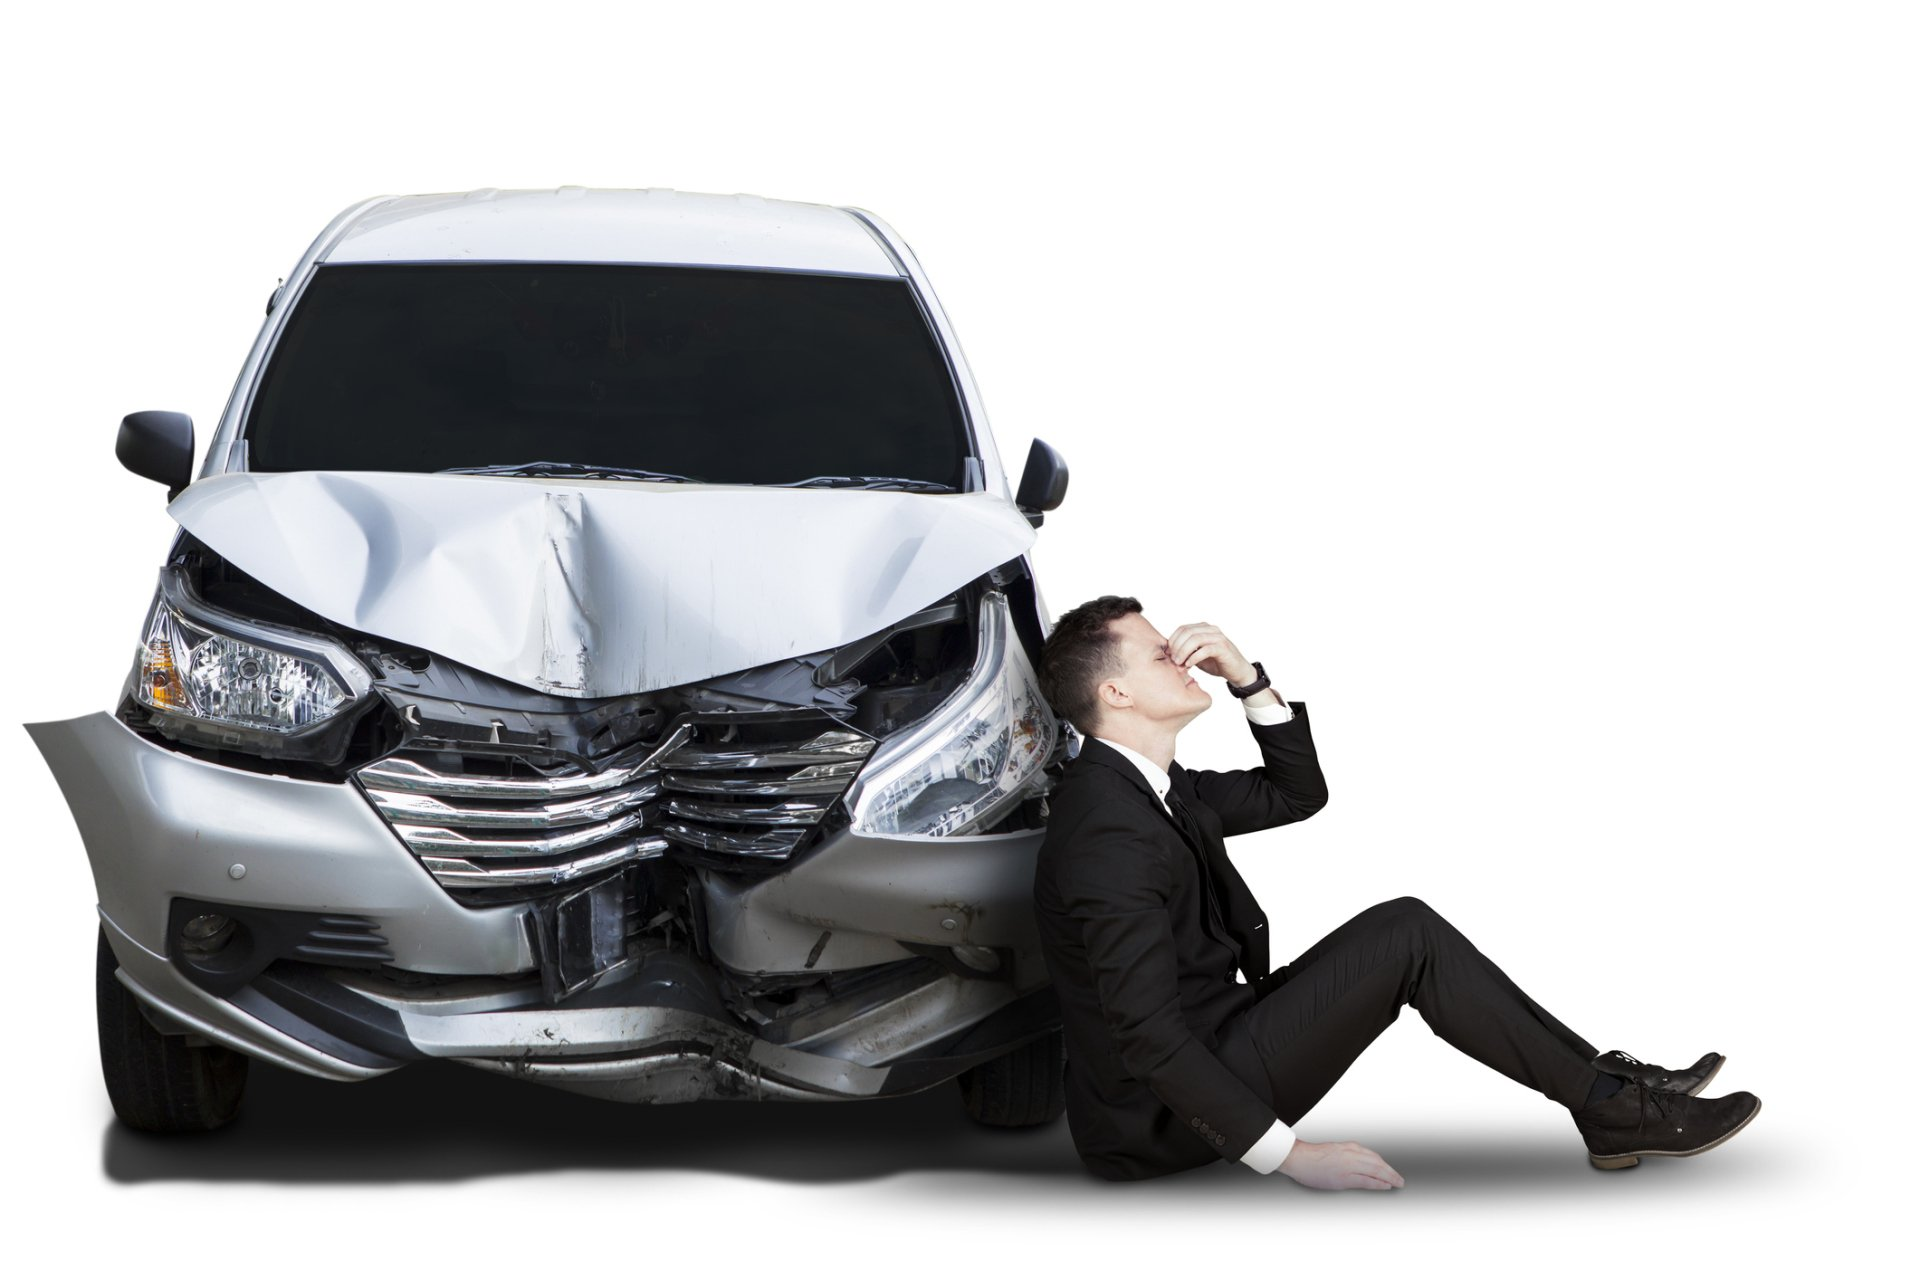 Do I need to hire a lawyer after my car accident?